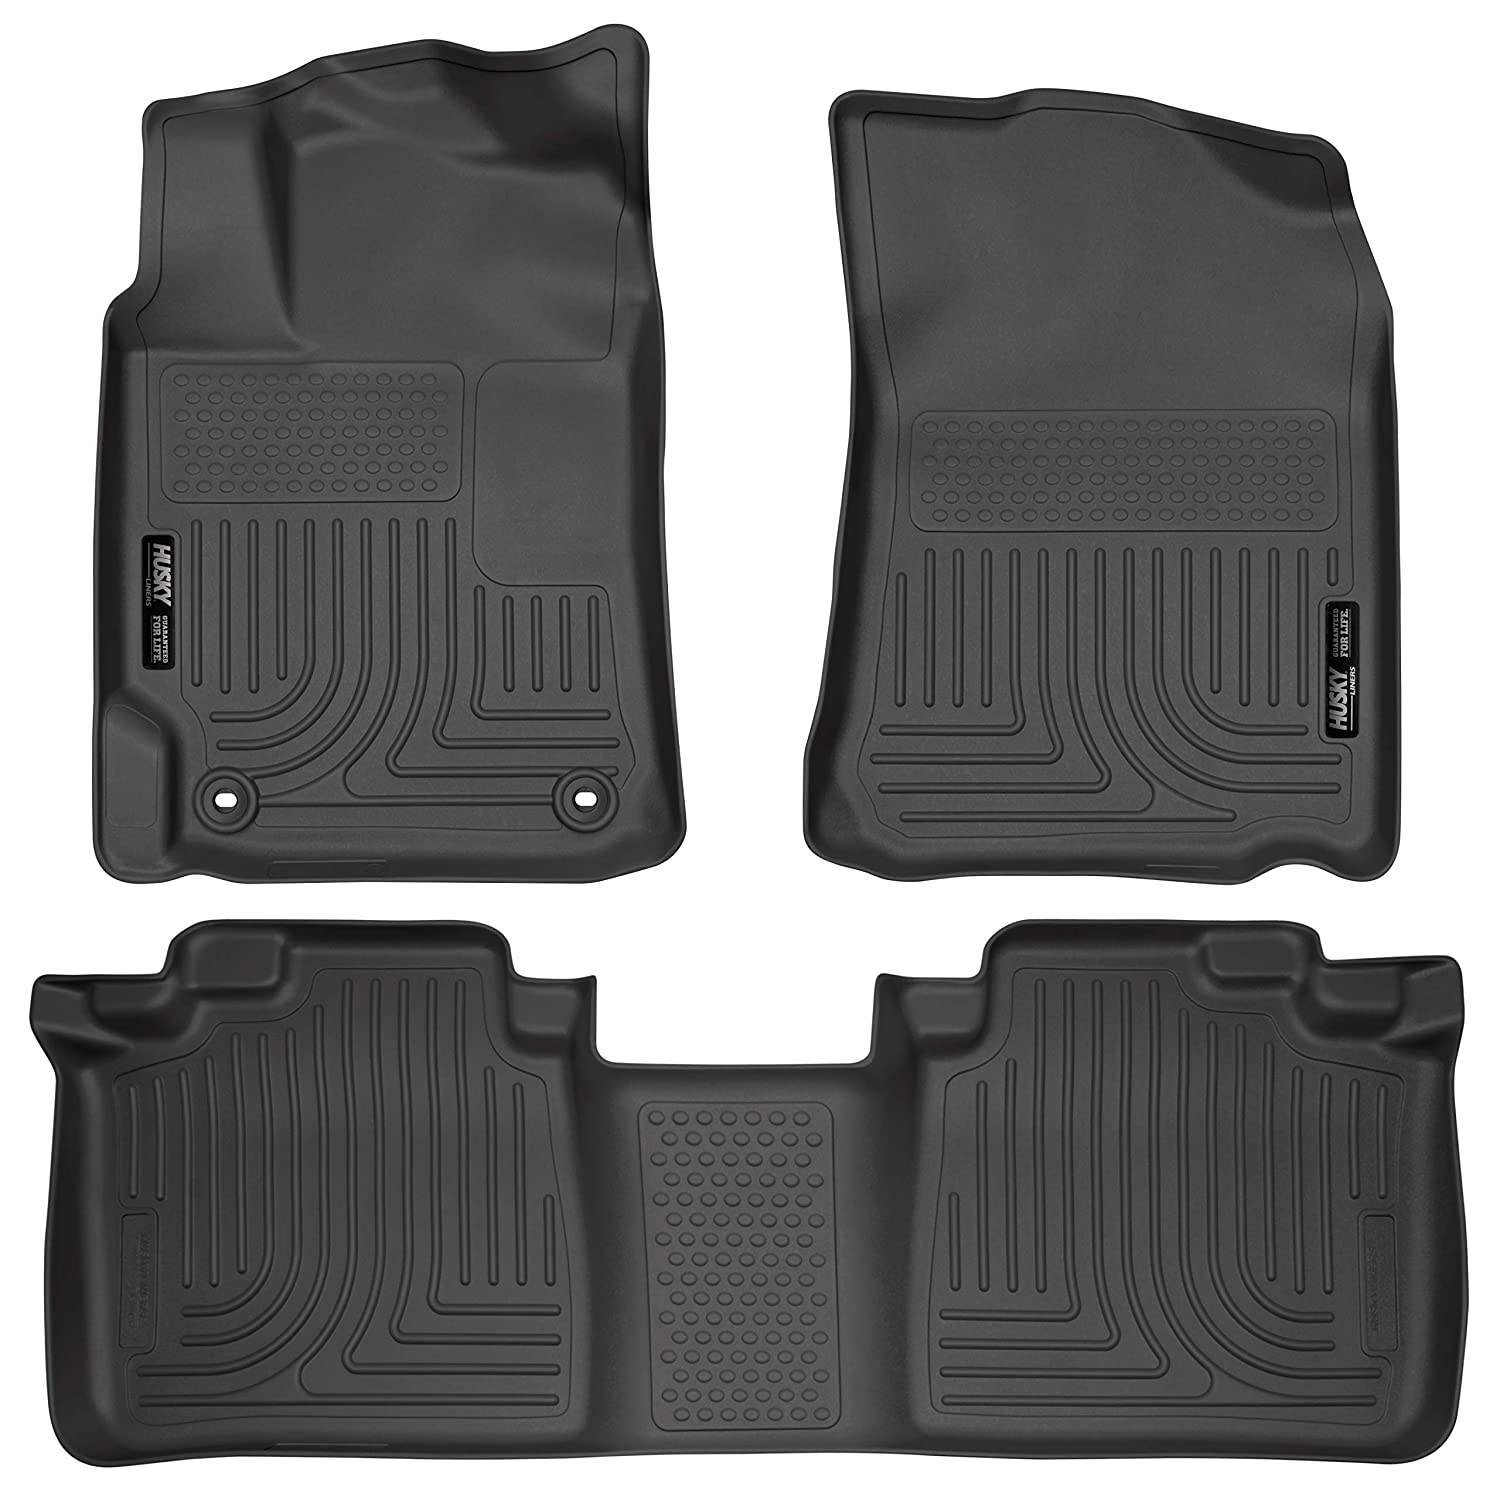 CFMBX1IS9202 Nylon Carpet Coverking Custom Fit Front and Rear Floor Mats for Select Isuzu Amigo Models Black